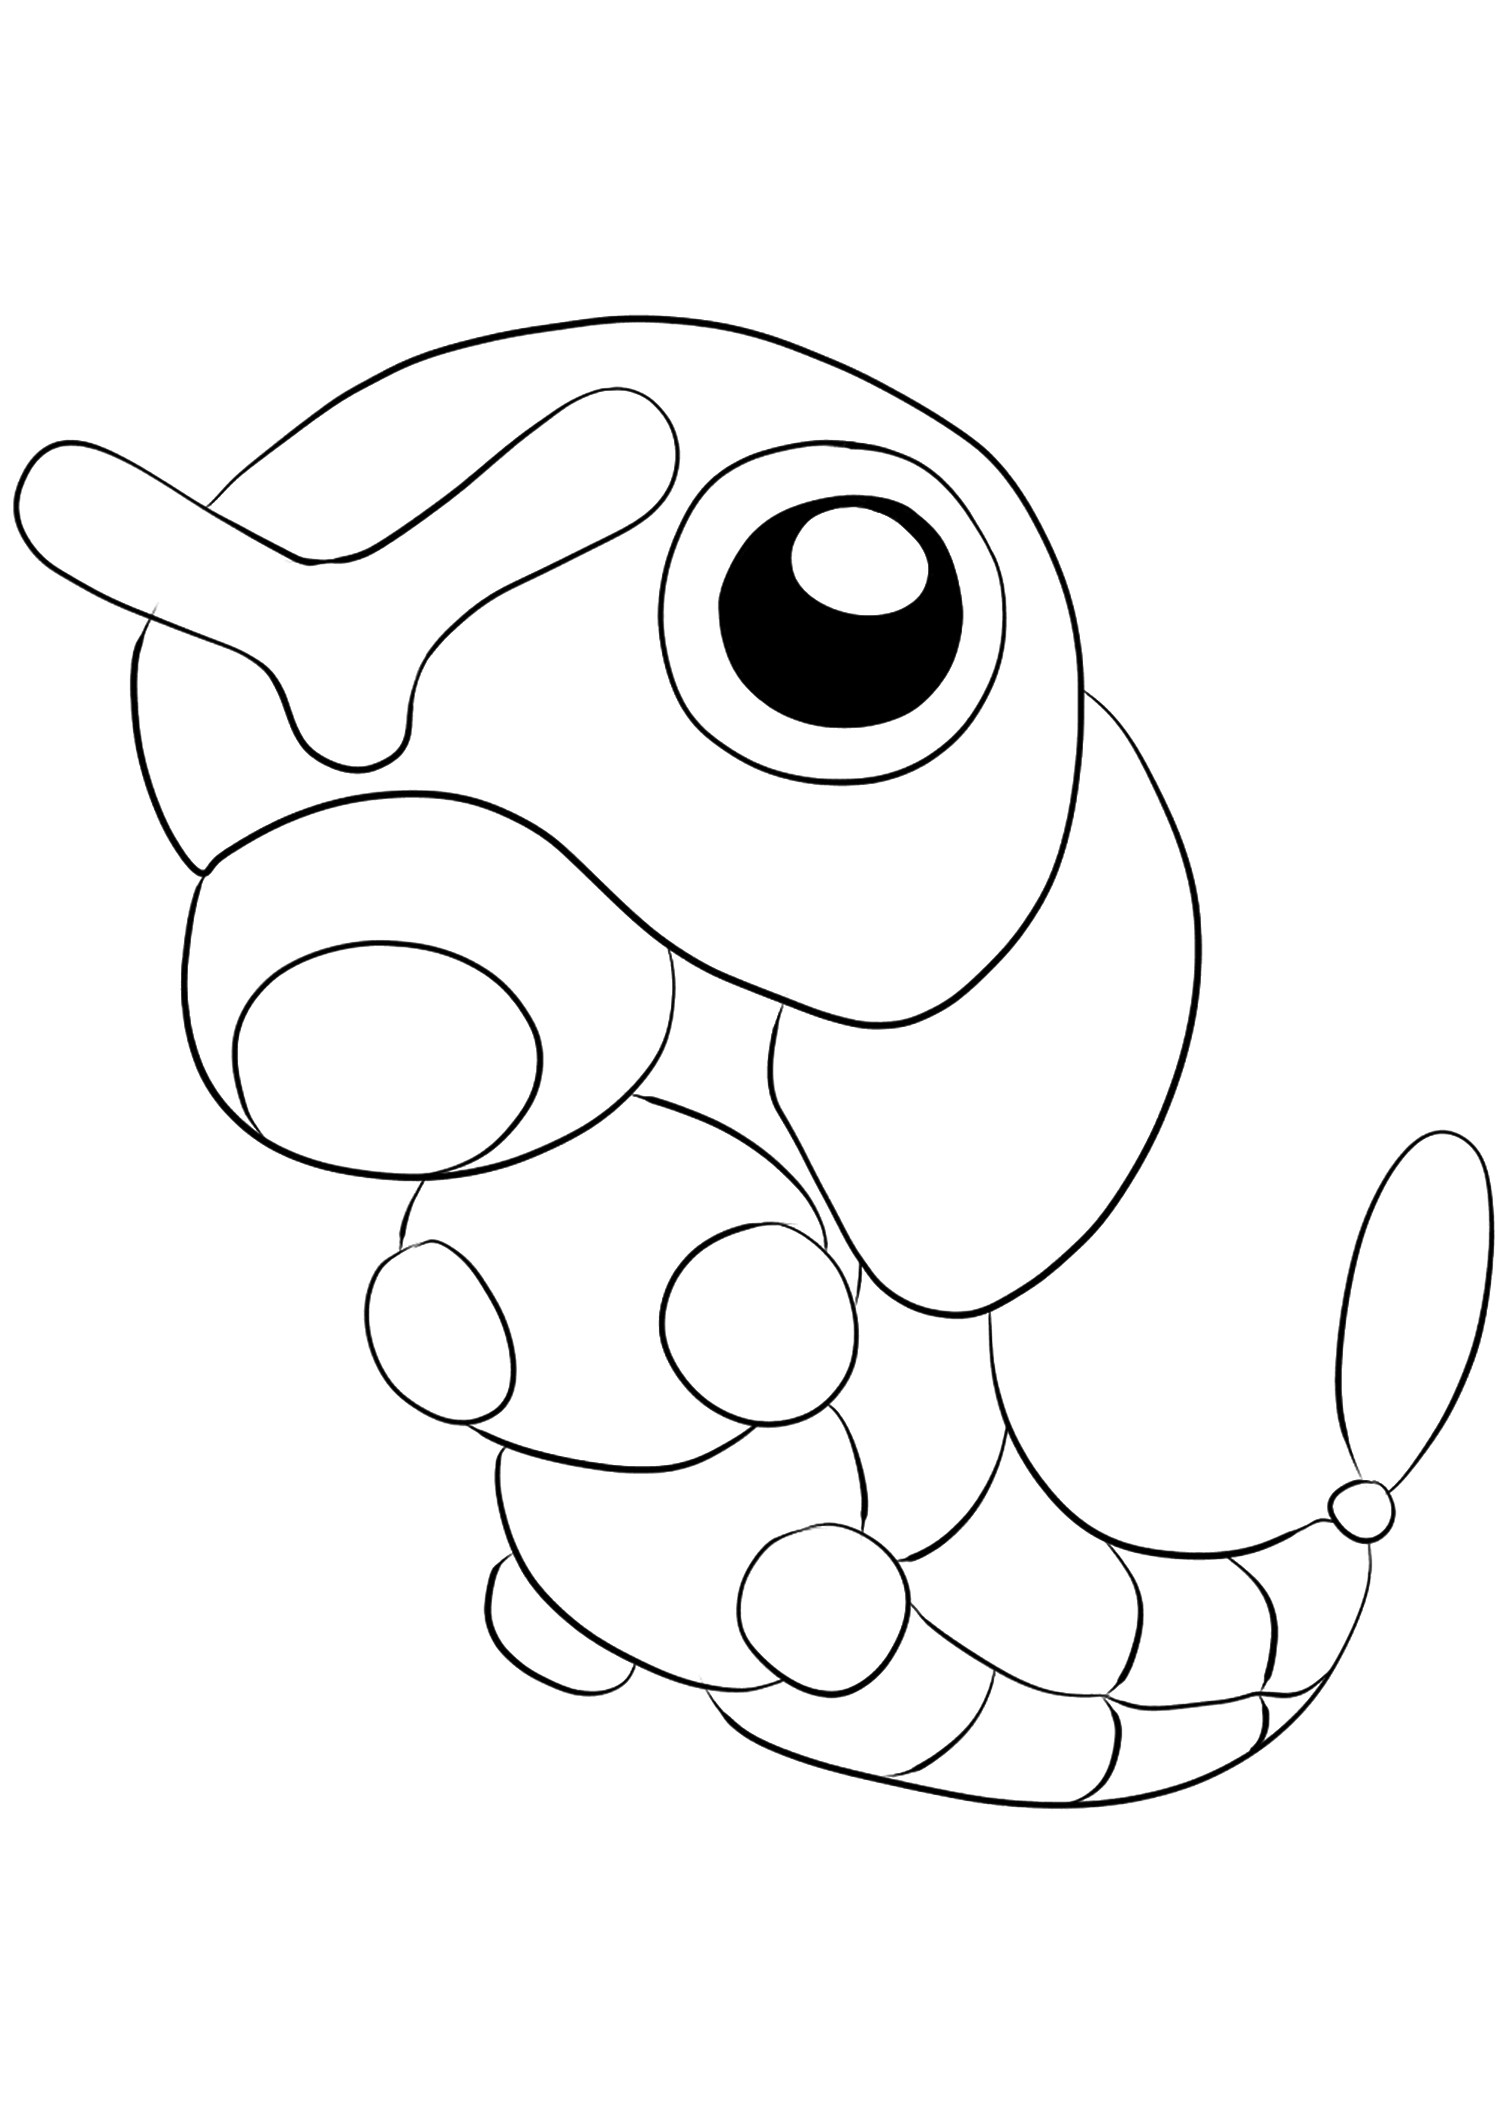 Caterpie No 10 Caterpie Coloring Page Generation I Pokemon Of Type Bugoriginal Image Credit Pokemon L Pokemon Coloring Coloring Pages Pokemon Coloring Pages